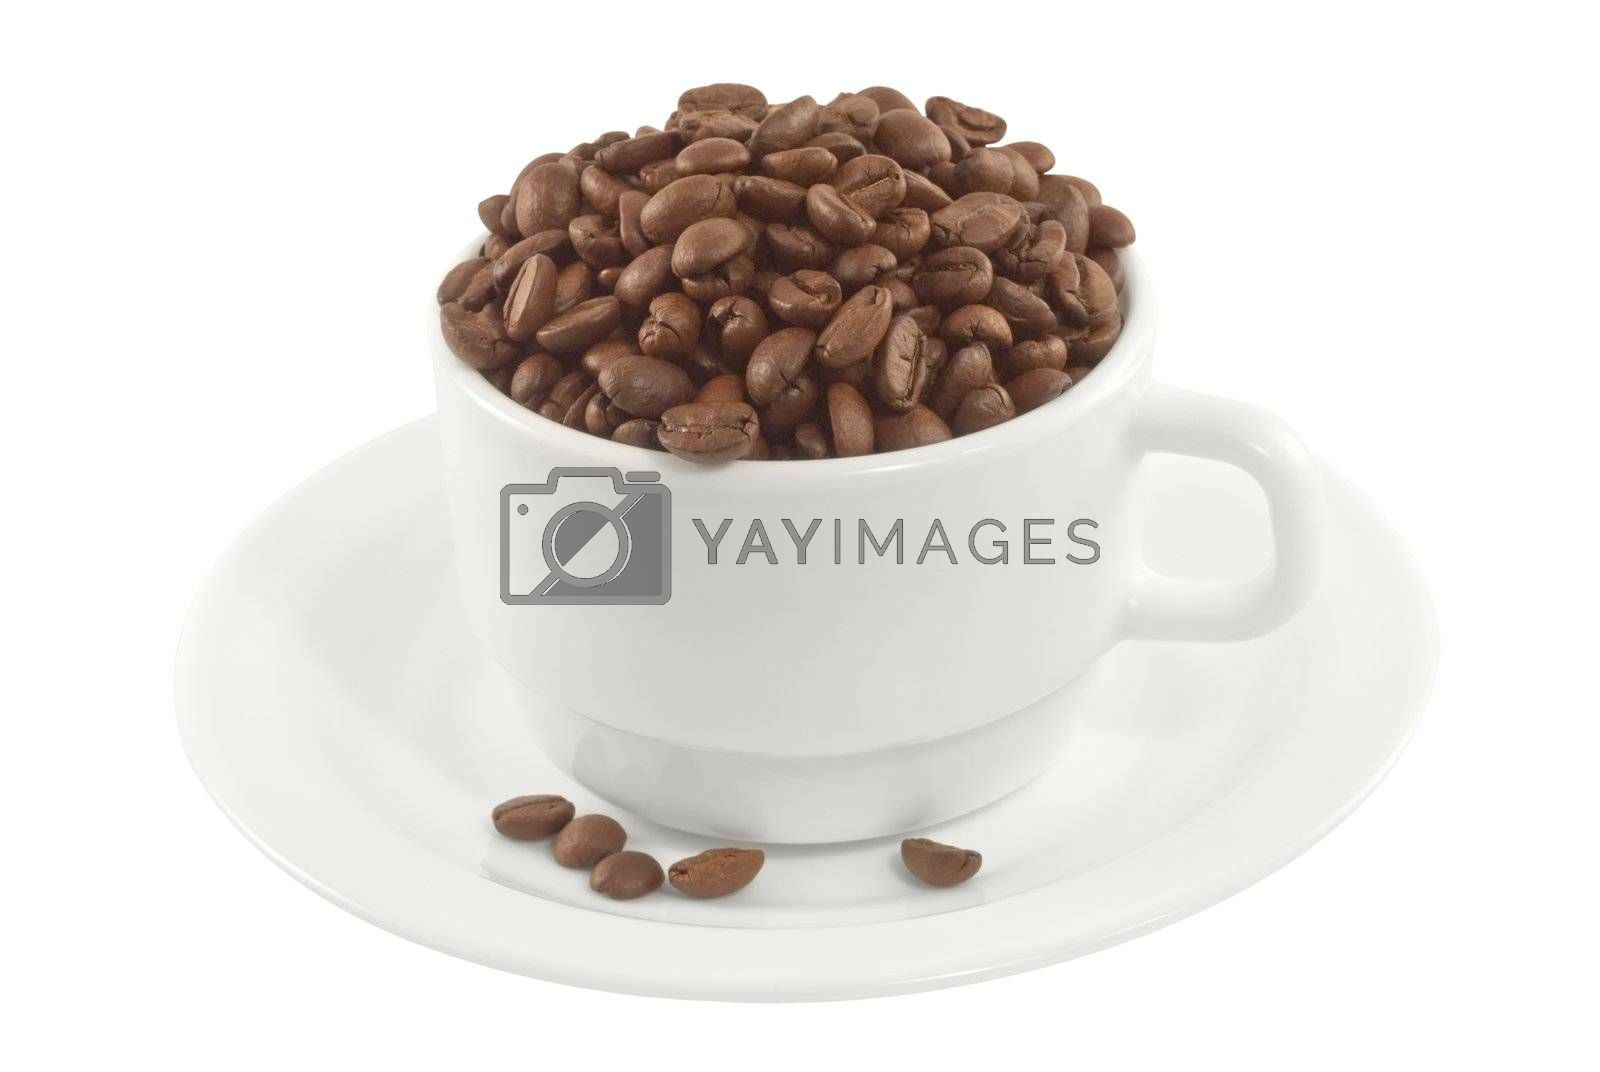 Cup and saucer full of coffee beans, side view by alexvav